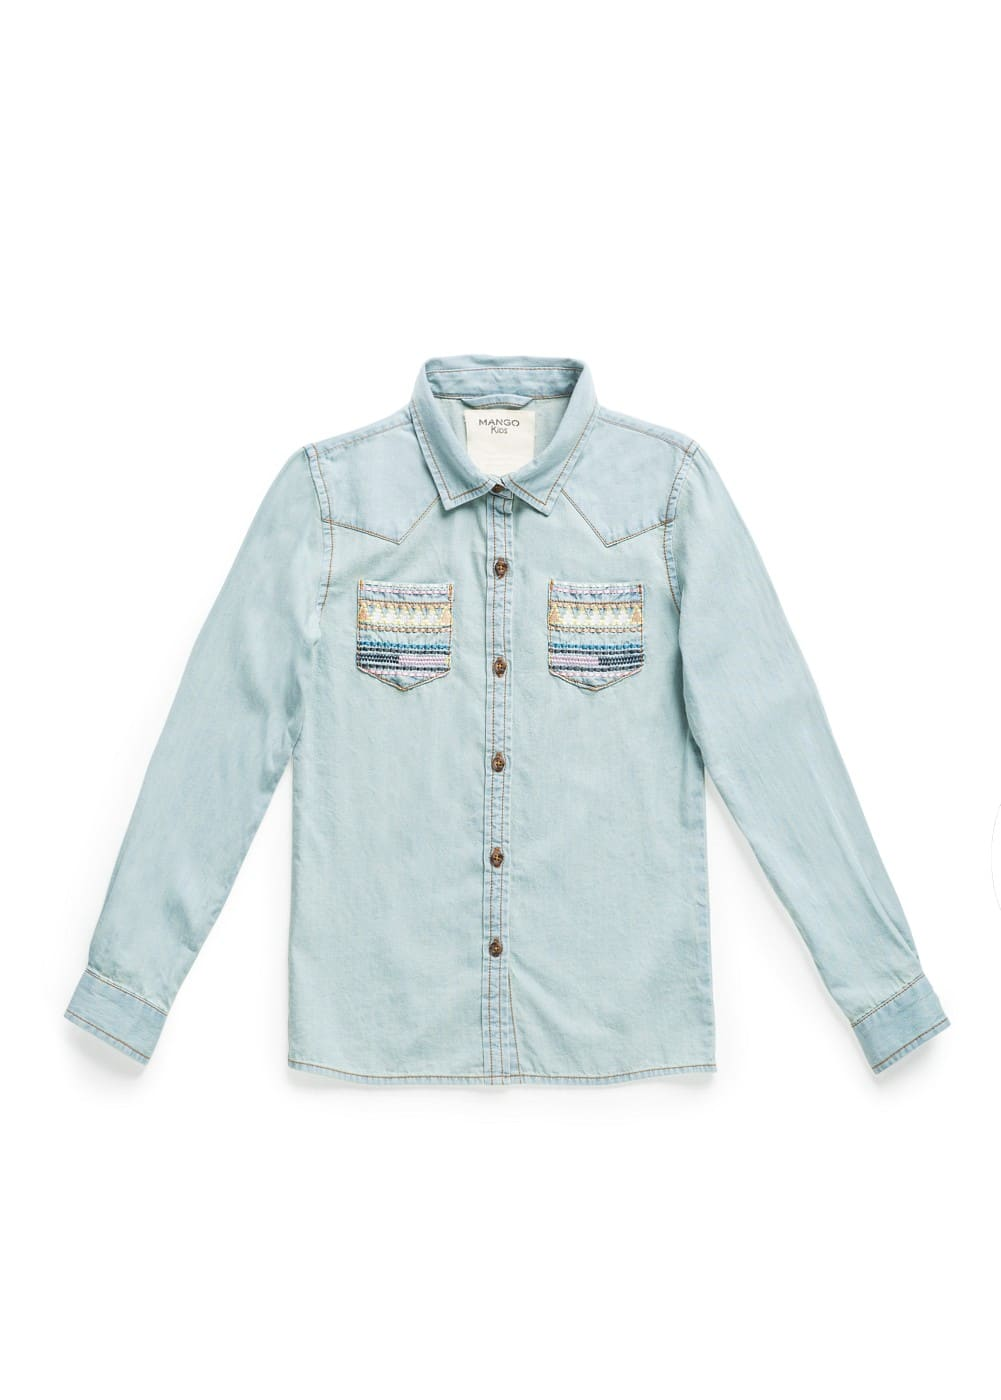 ETHNIC EMBROIDERY DENIM SHIRT